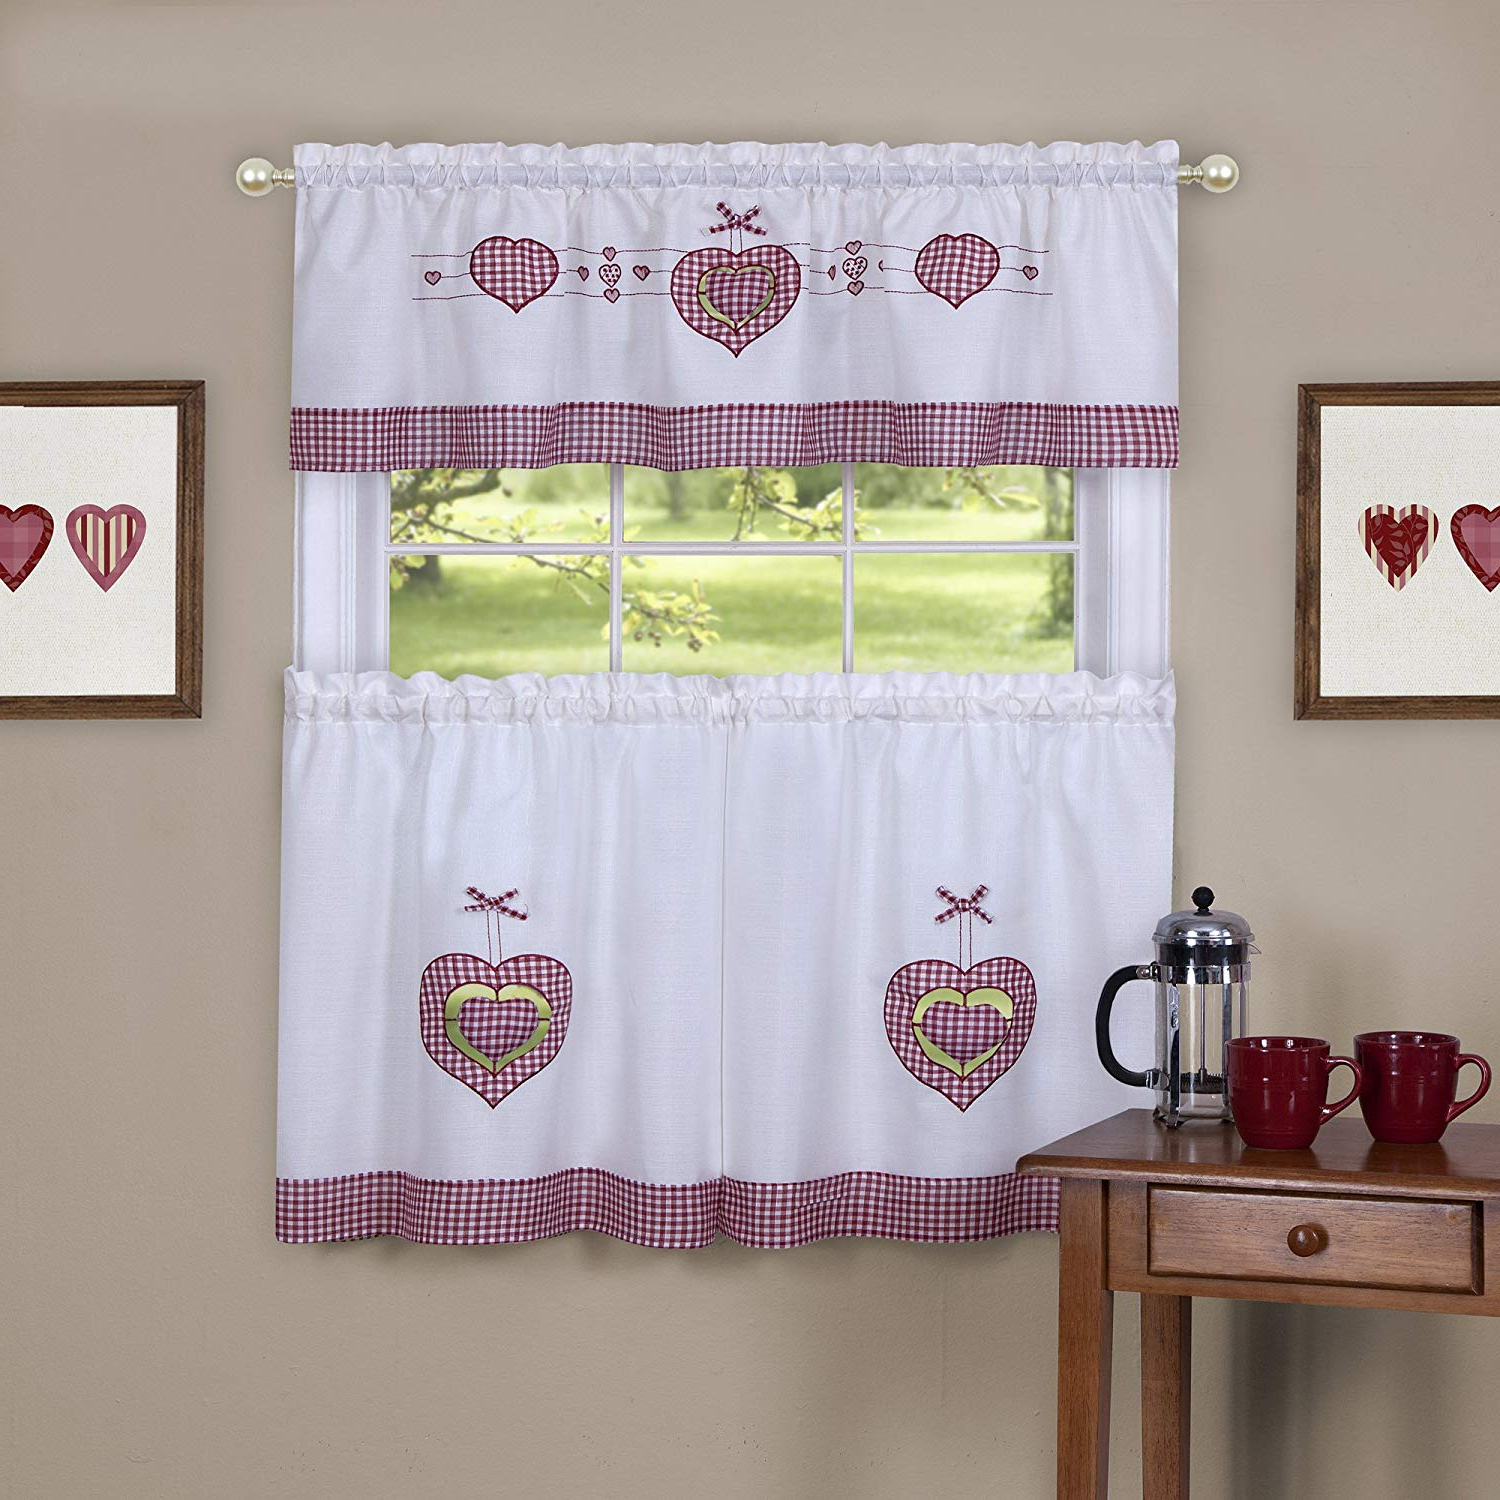 "Achim Home Furnishings Gingham Hearts Embellished Tier And Valance Window Curtain Set, 56"" X 24"", Multi Intended For Preferred Window Curtain Tier And Valance Sets (View 14 of 20)"